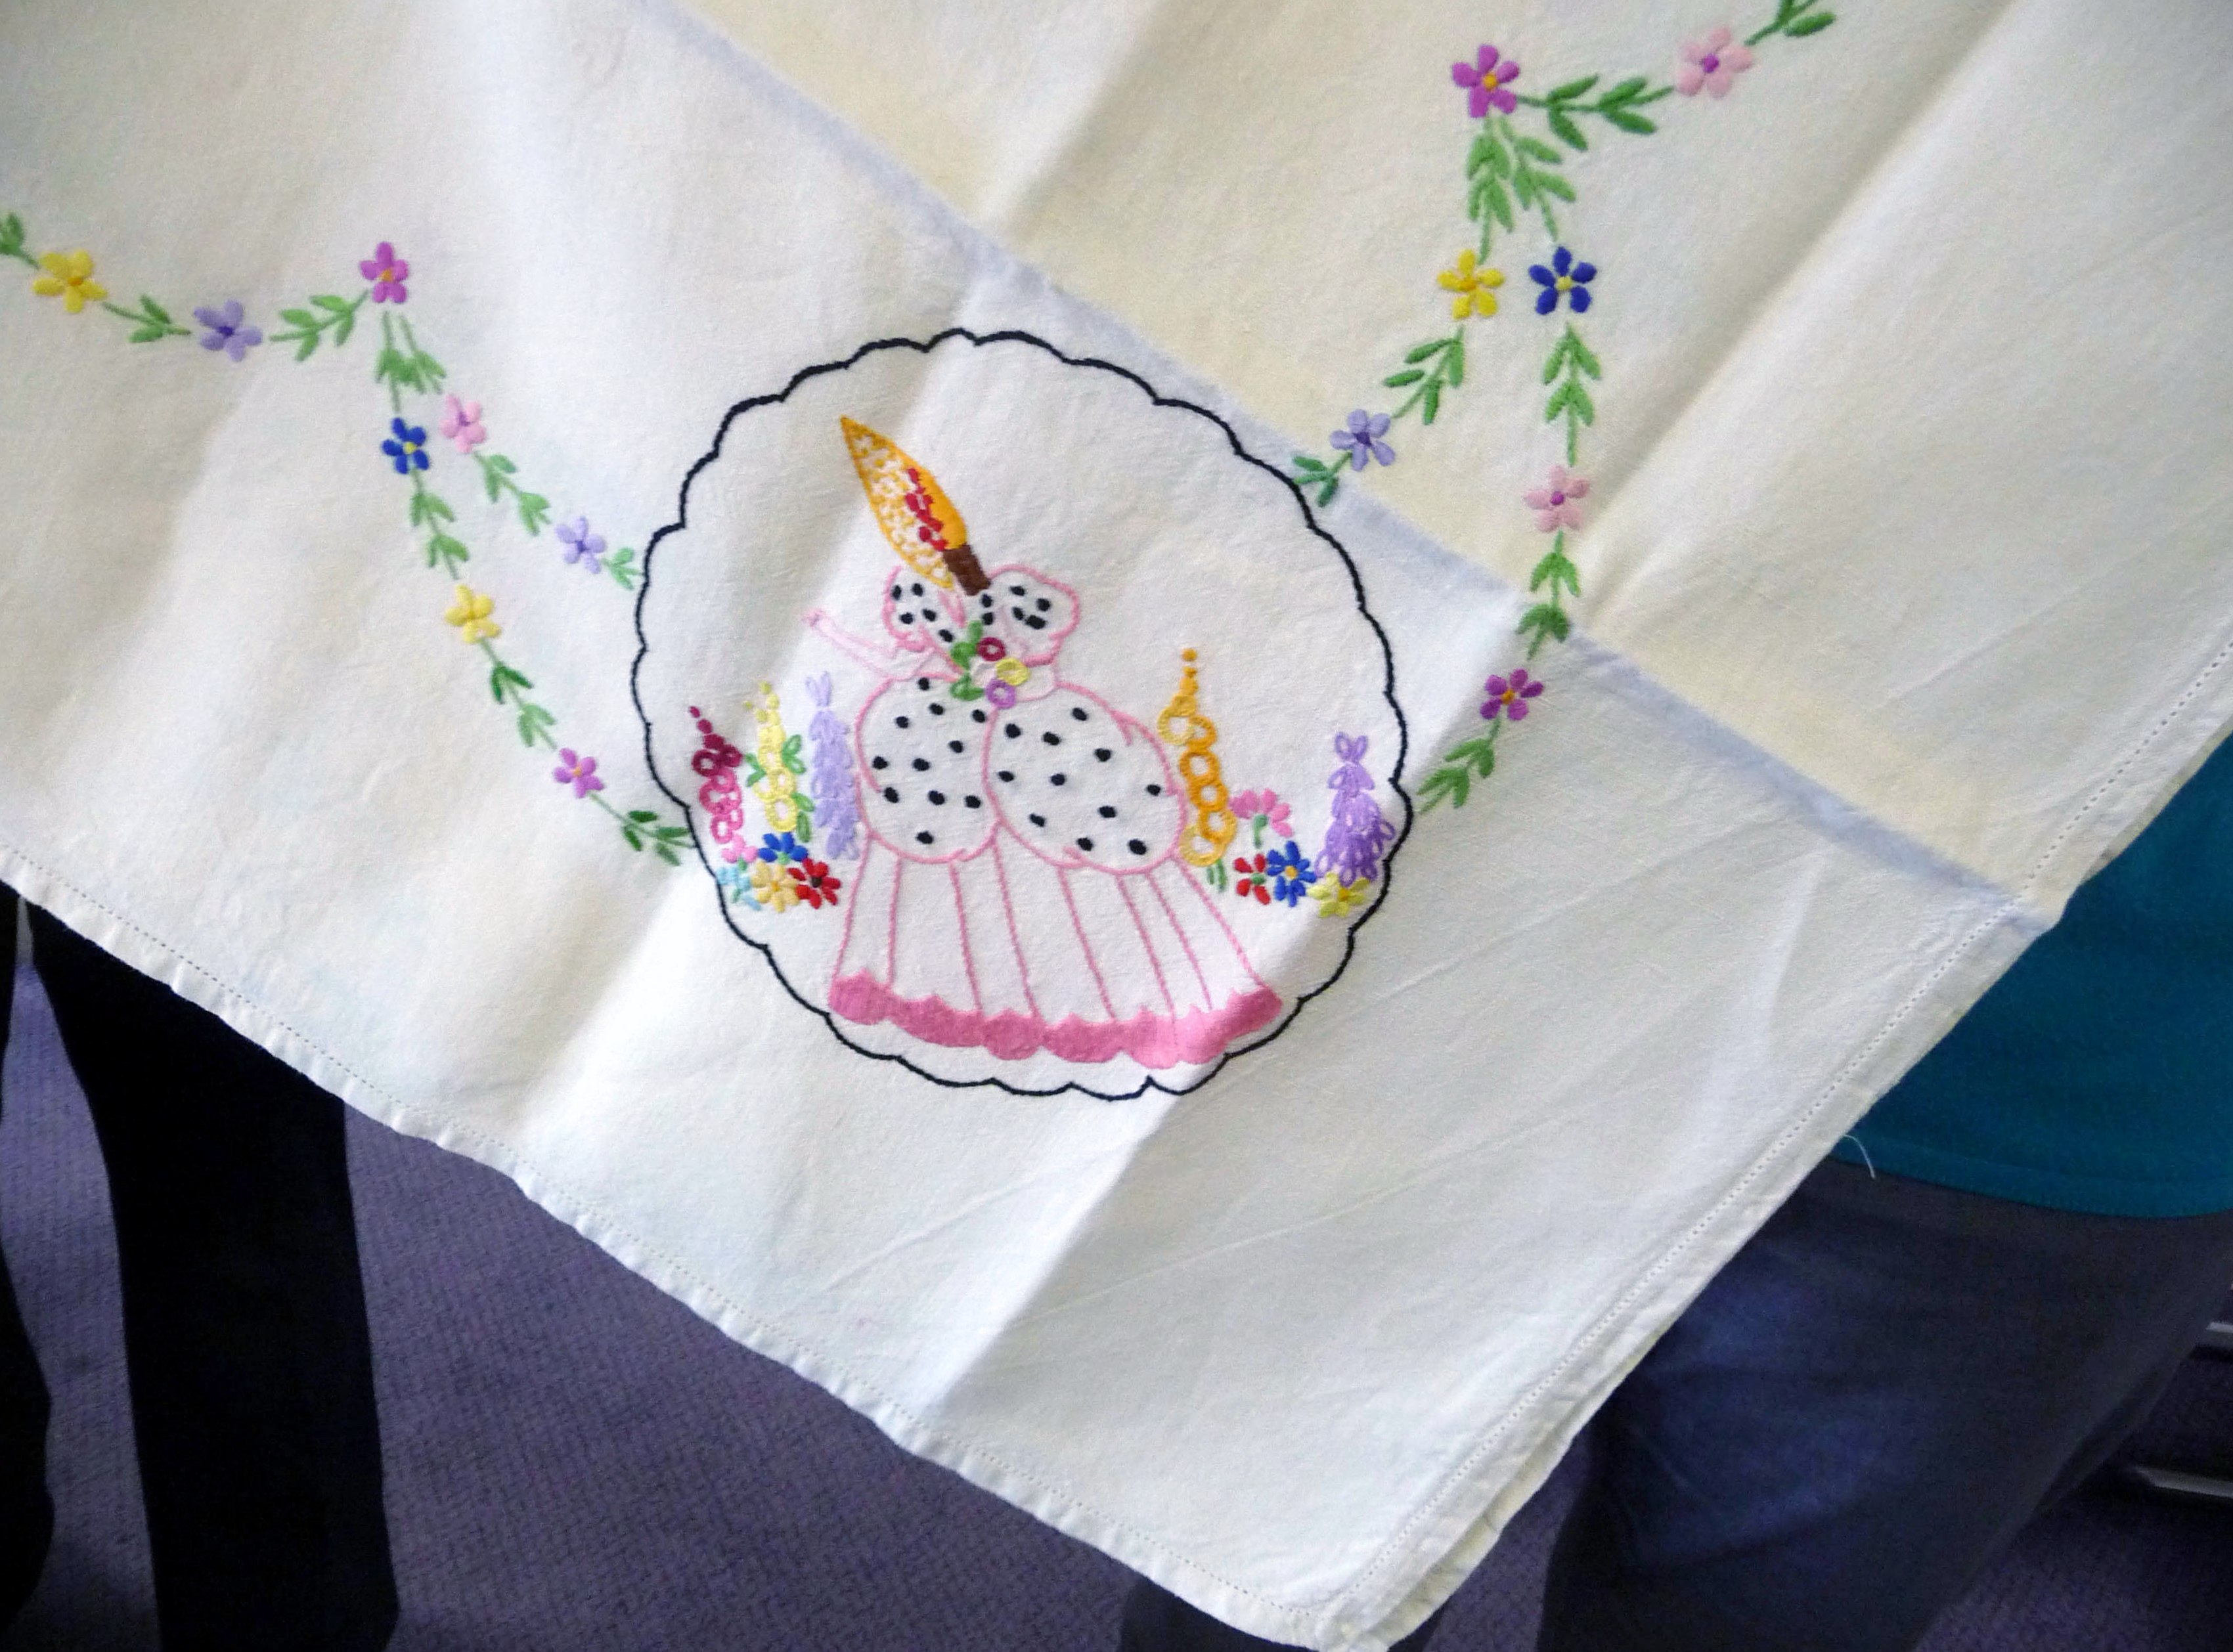 Val is showing our YE group a very old embroidered tablecloth (detail)